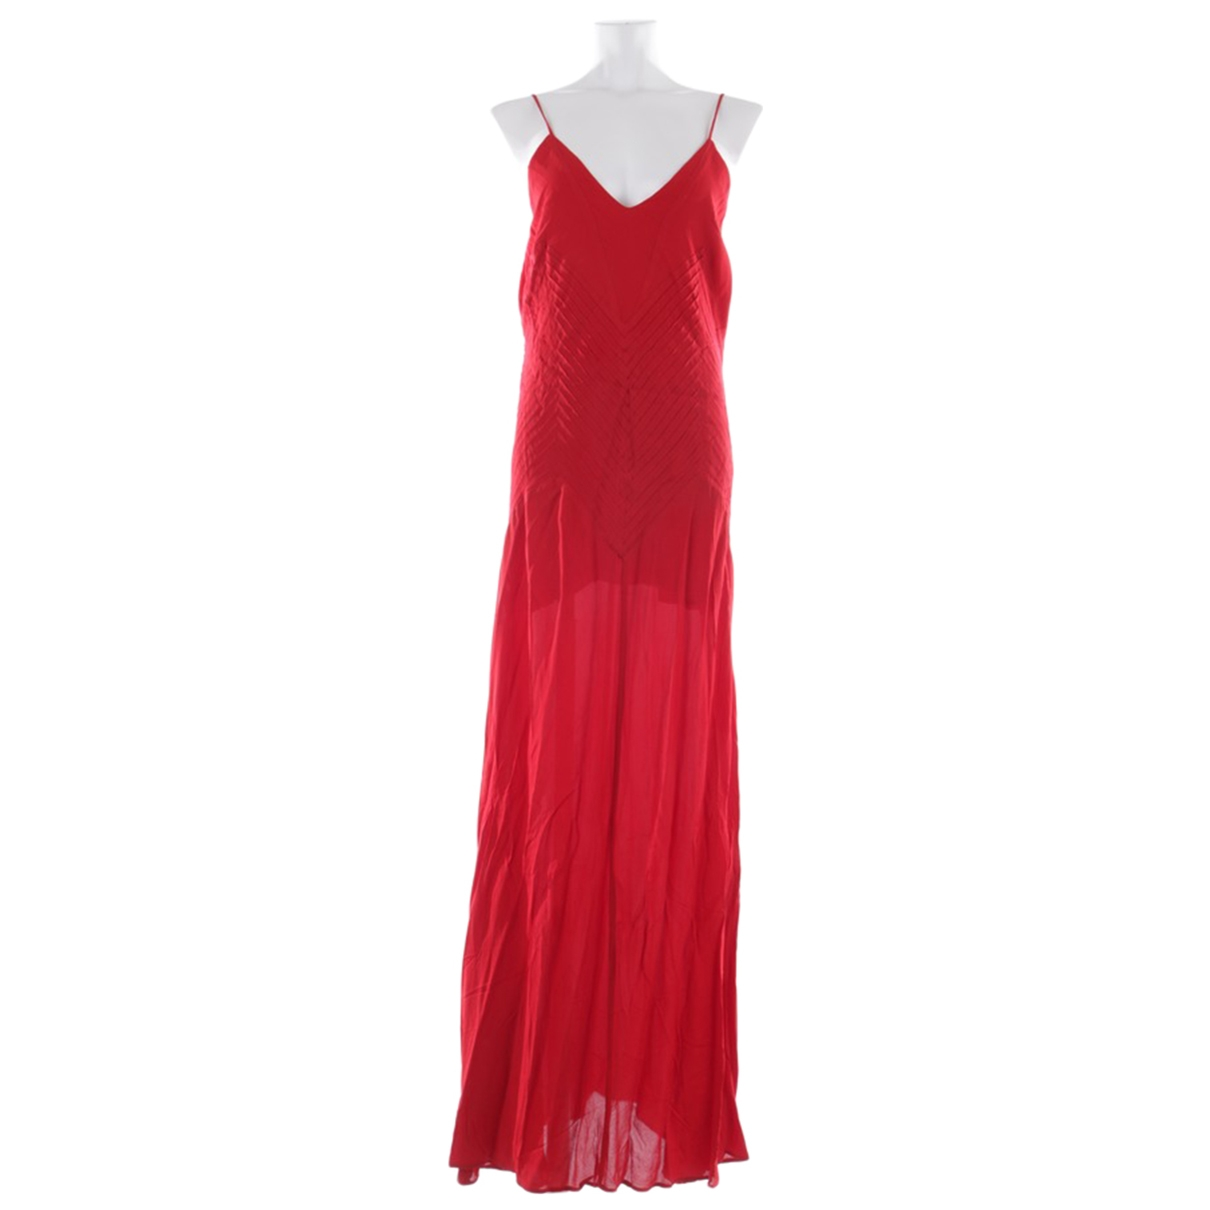 Anine Bing - Robe   pour femme - rouge